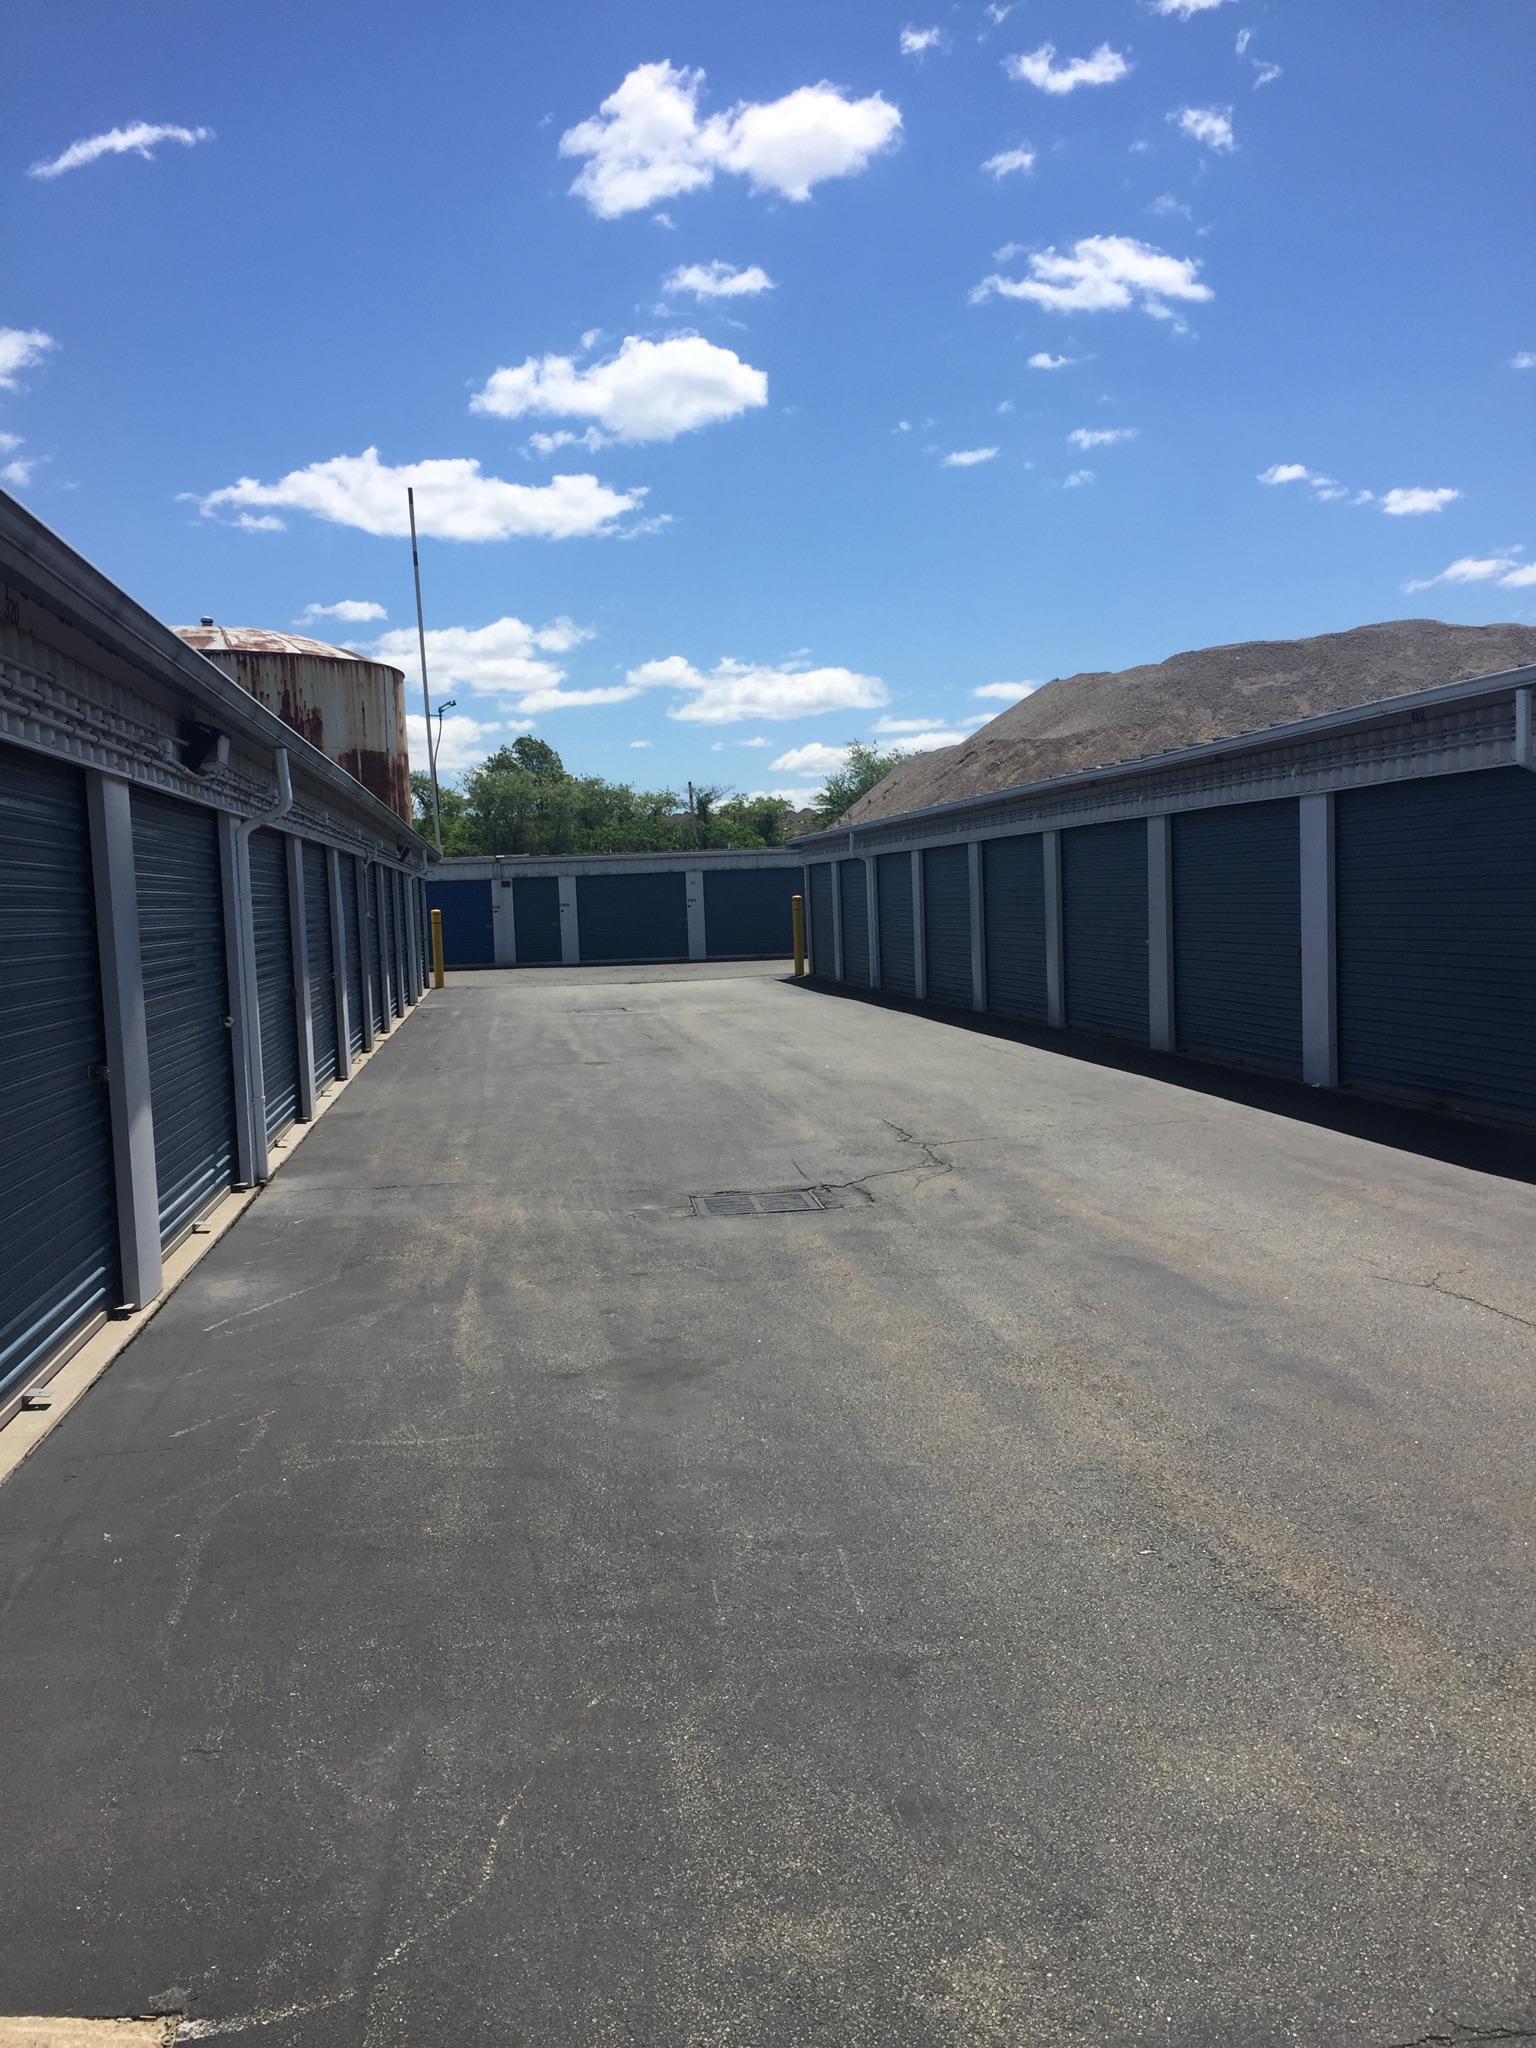 Self storage in Kearny, NJ